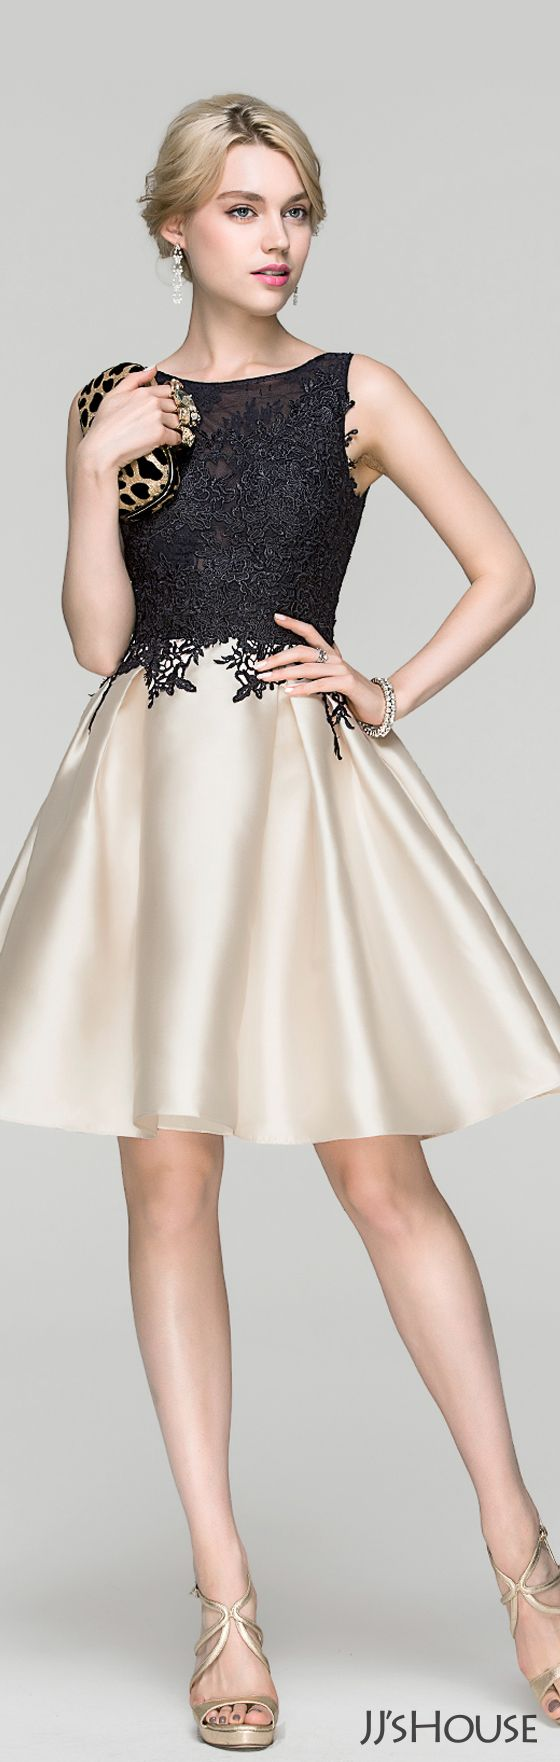 Party cocktail dress images